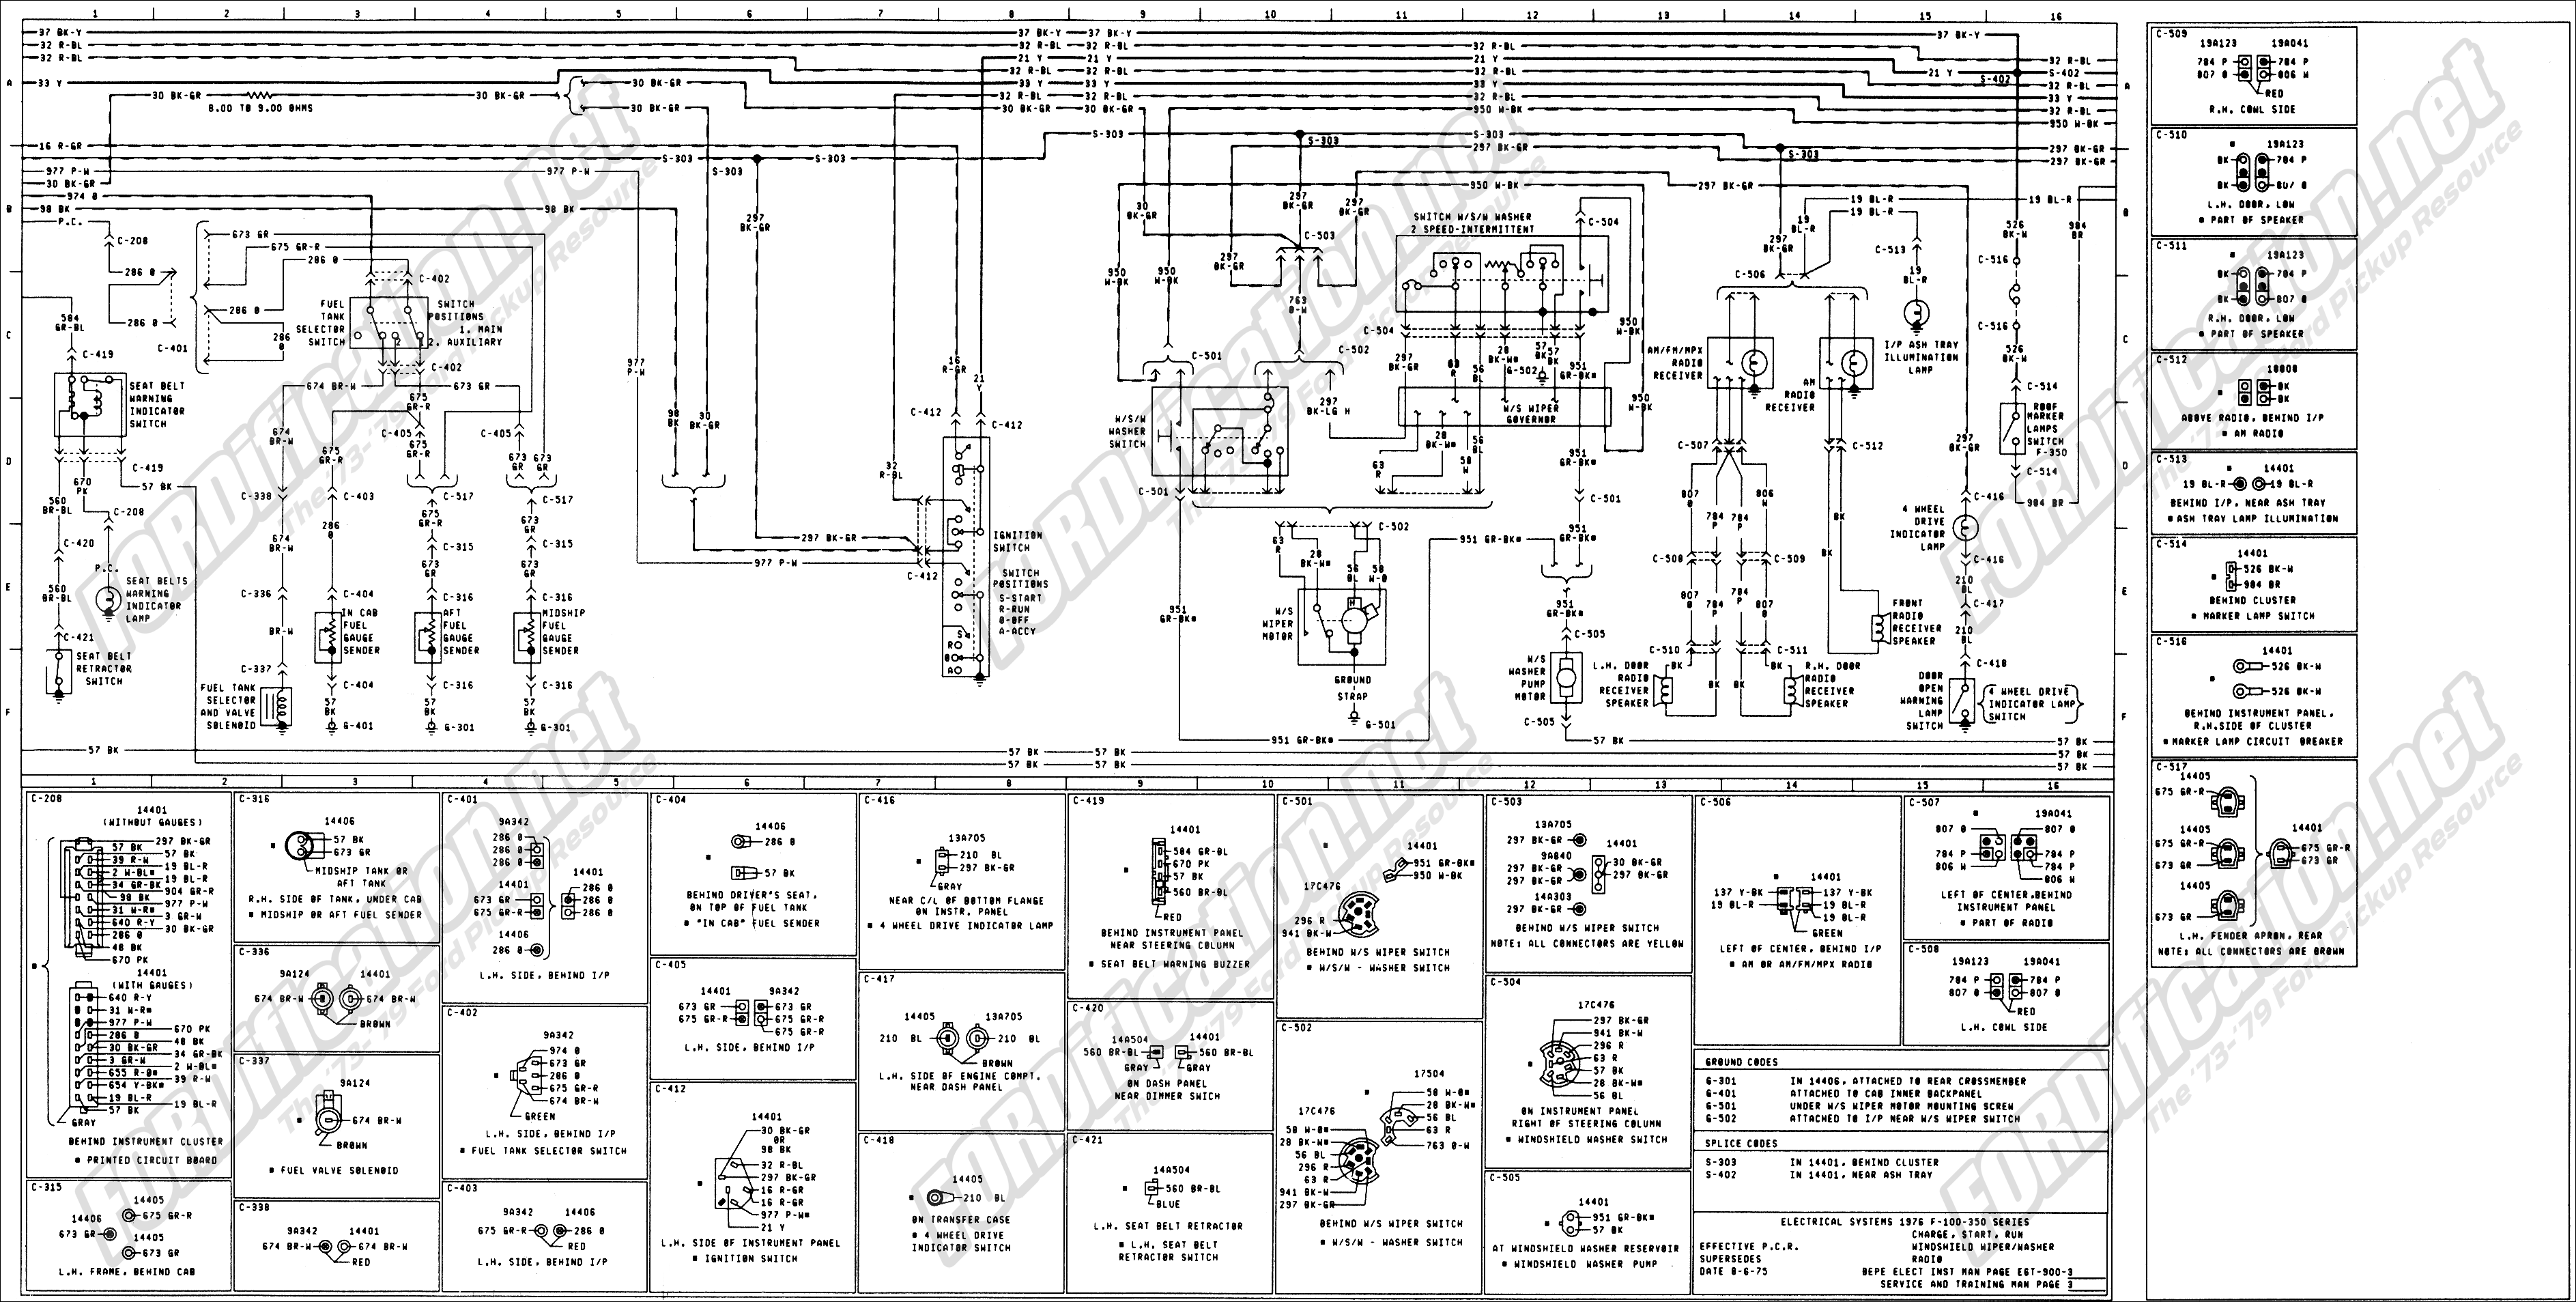 wiring_76master_3of9 1973 1979 ford truck wiring diagrams & schematics fordification net 2001 ford f150 horn wiring diagram at soozxer.org